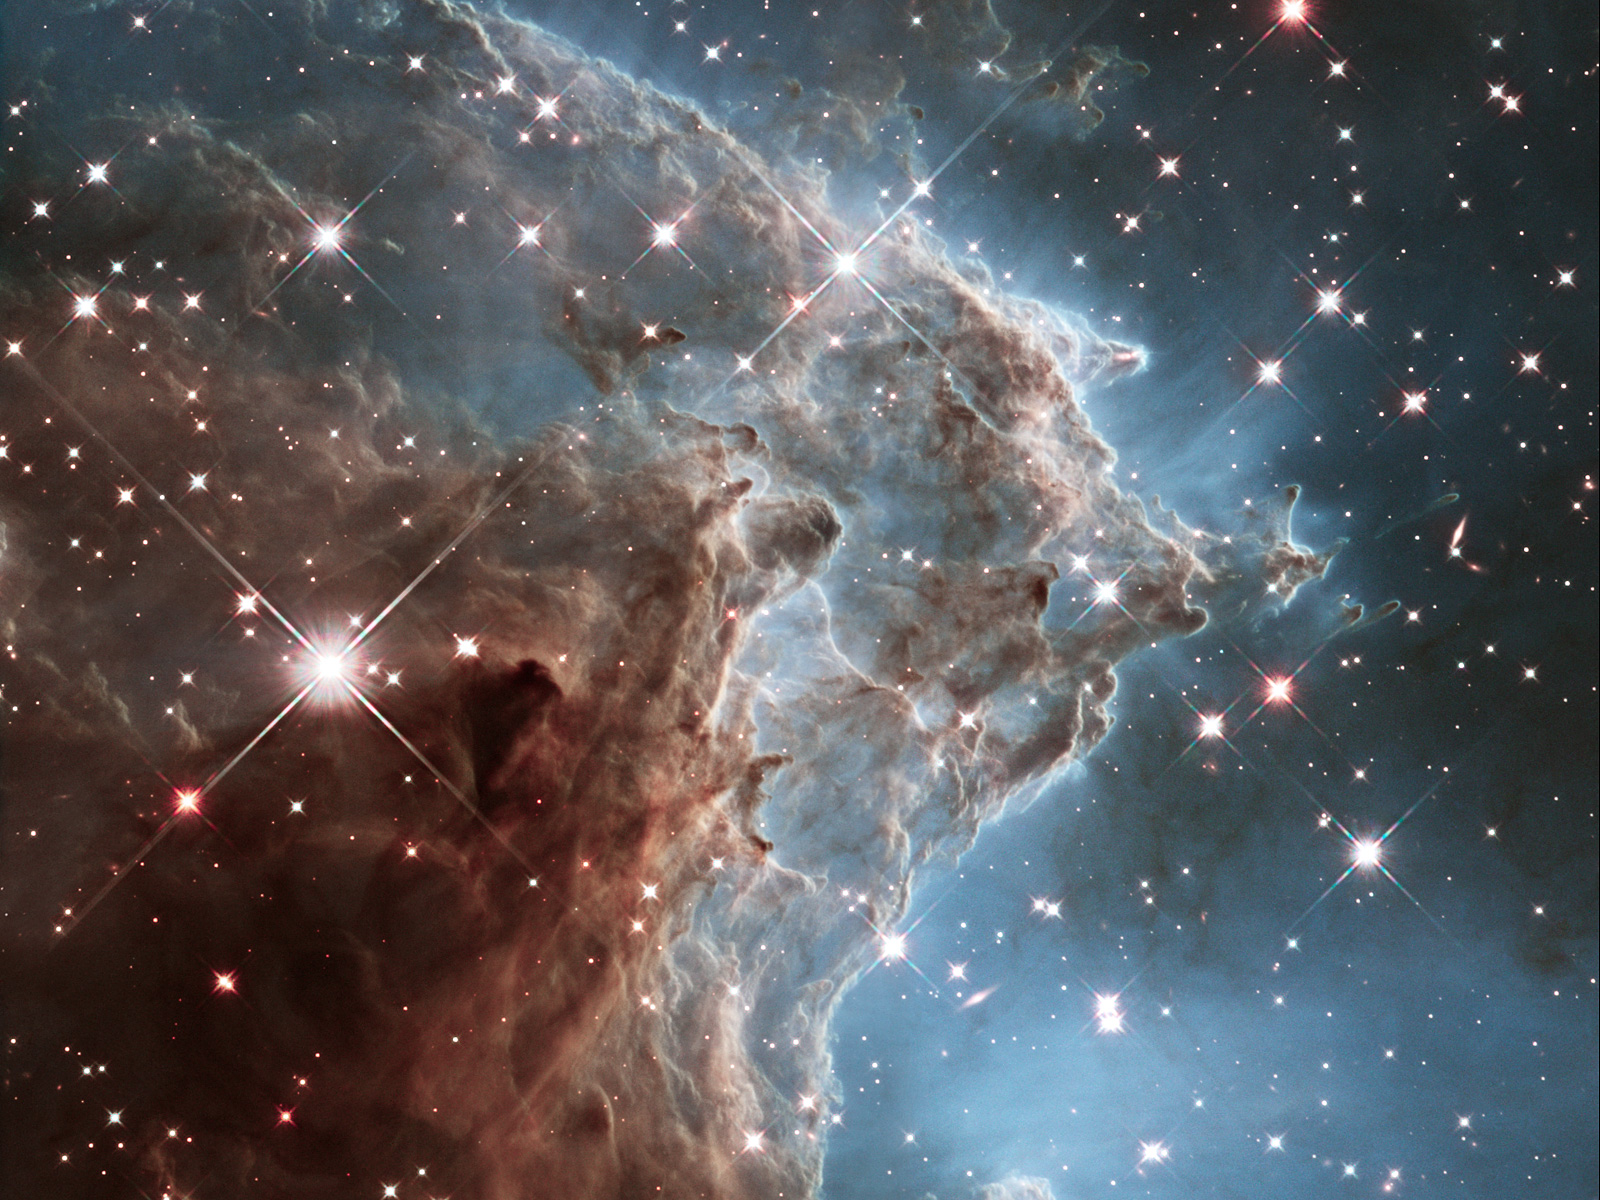 Magnificent 'Monkey Head' Nebula | Space Wallpaper